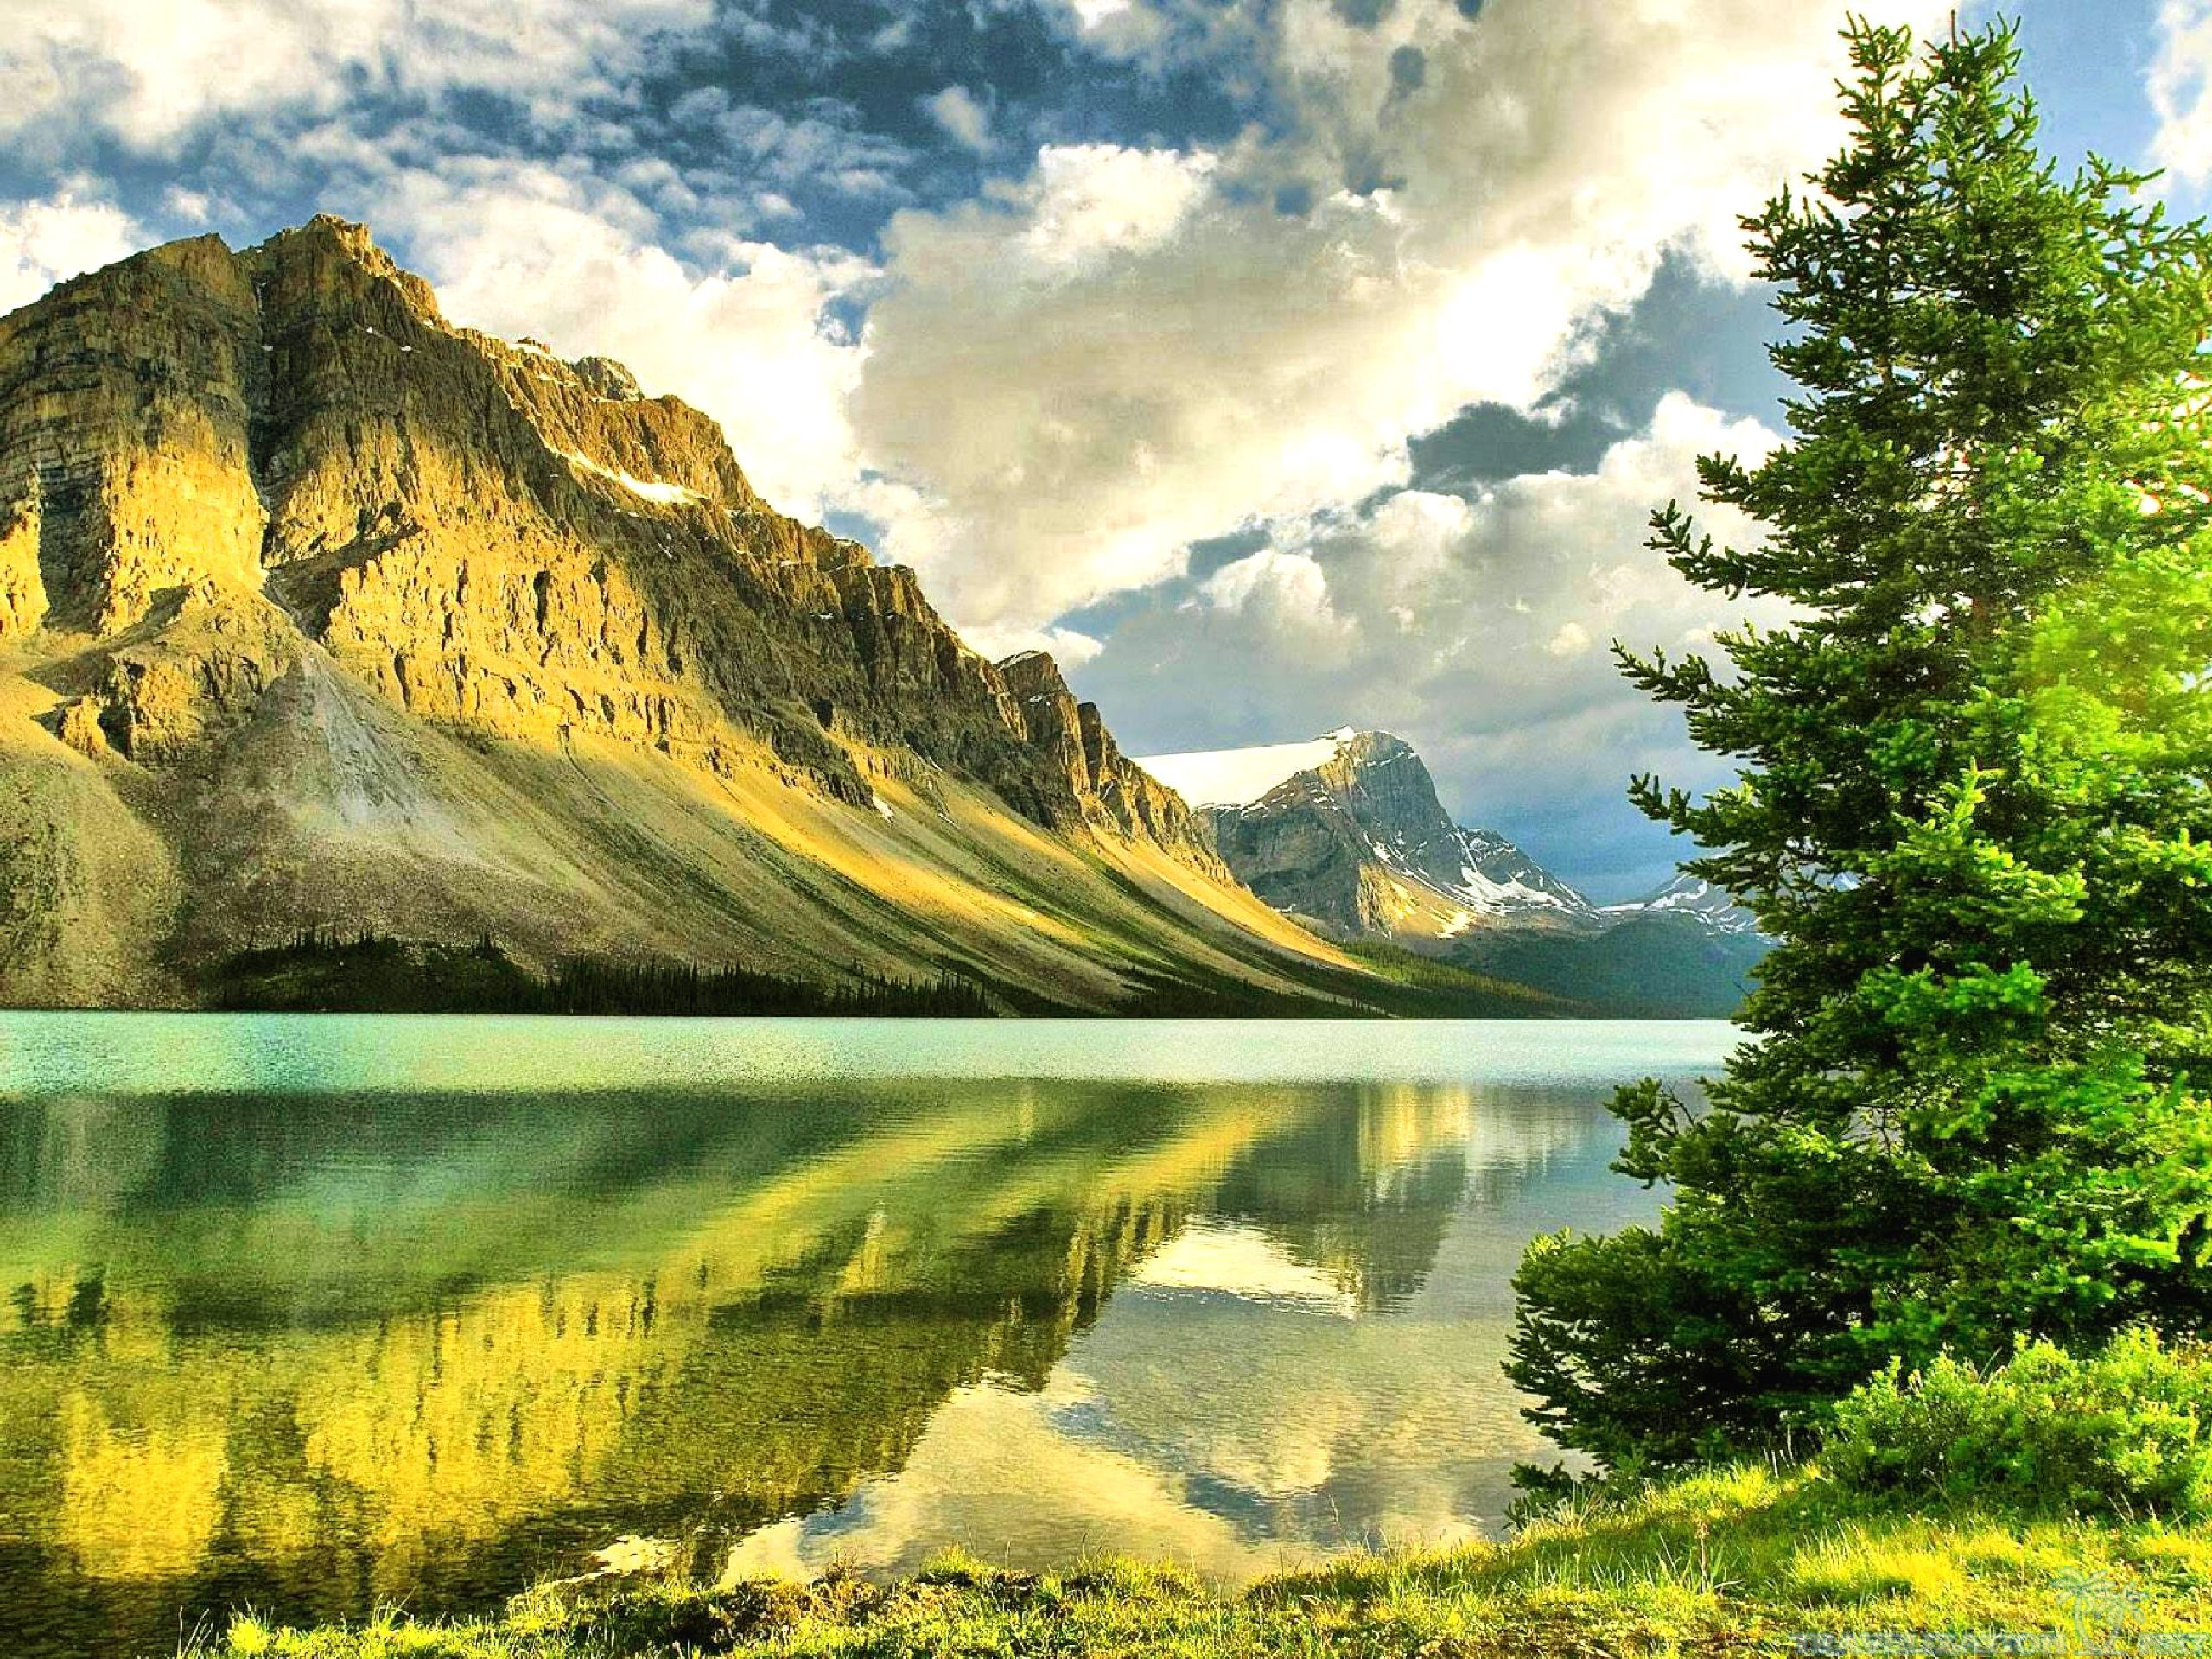 Free Download High Quality Nature Wallpapers For Pc Walljpegcom 2560x1920 For Your Desktop Mobile Tablet Explore 49 Nature Wallpapers High Resolution Beautiful Desktop Wallpapers And Backgrounds The Most Wonderful